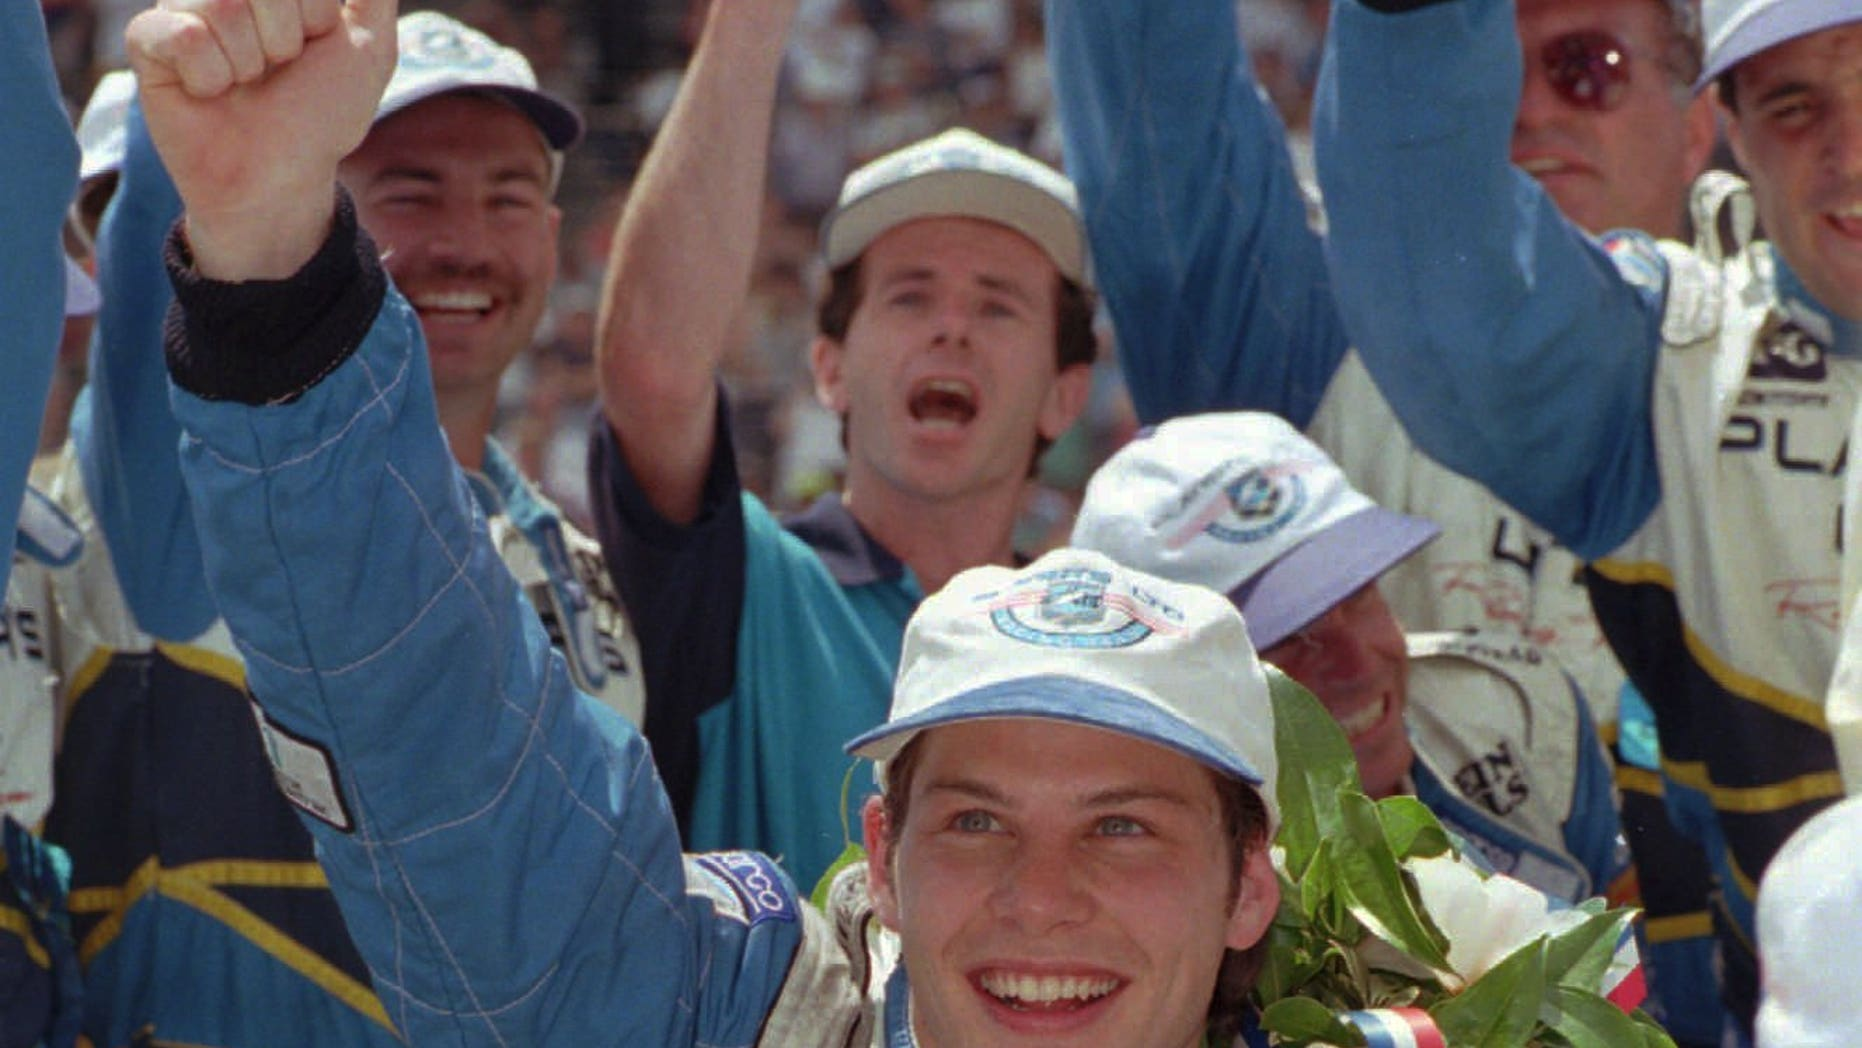 FILE - In this May 28, 1995 file photo, Jacques Villeneuve celebrates in Victory Lane after winning the Indianapolis 500 auto race in Indianapolis. Villeneuve is expected to finally compete for a second Indianapolis 500 crown. On Wednesday, Feb. 26, 2014, the 42-year-old Canadian driver is expected to be announced as a driver for Schmidt Peterson Motorsports this May. (AP Photo/Al Behrman, File)